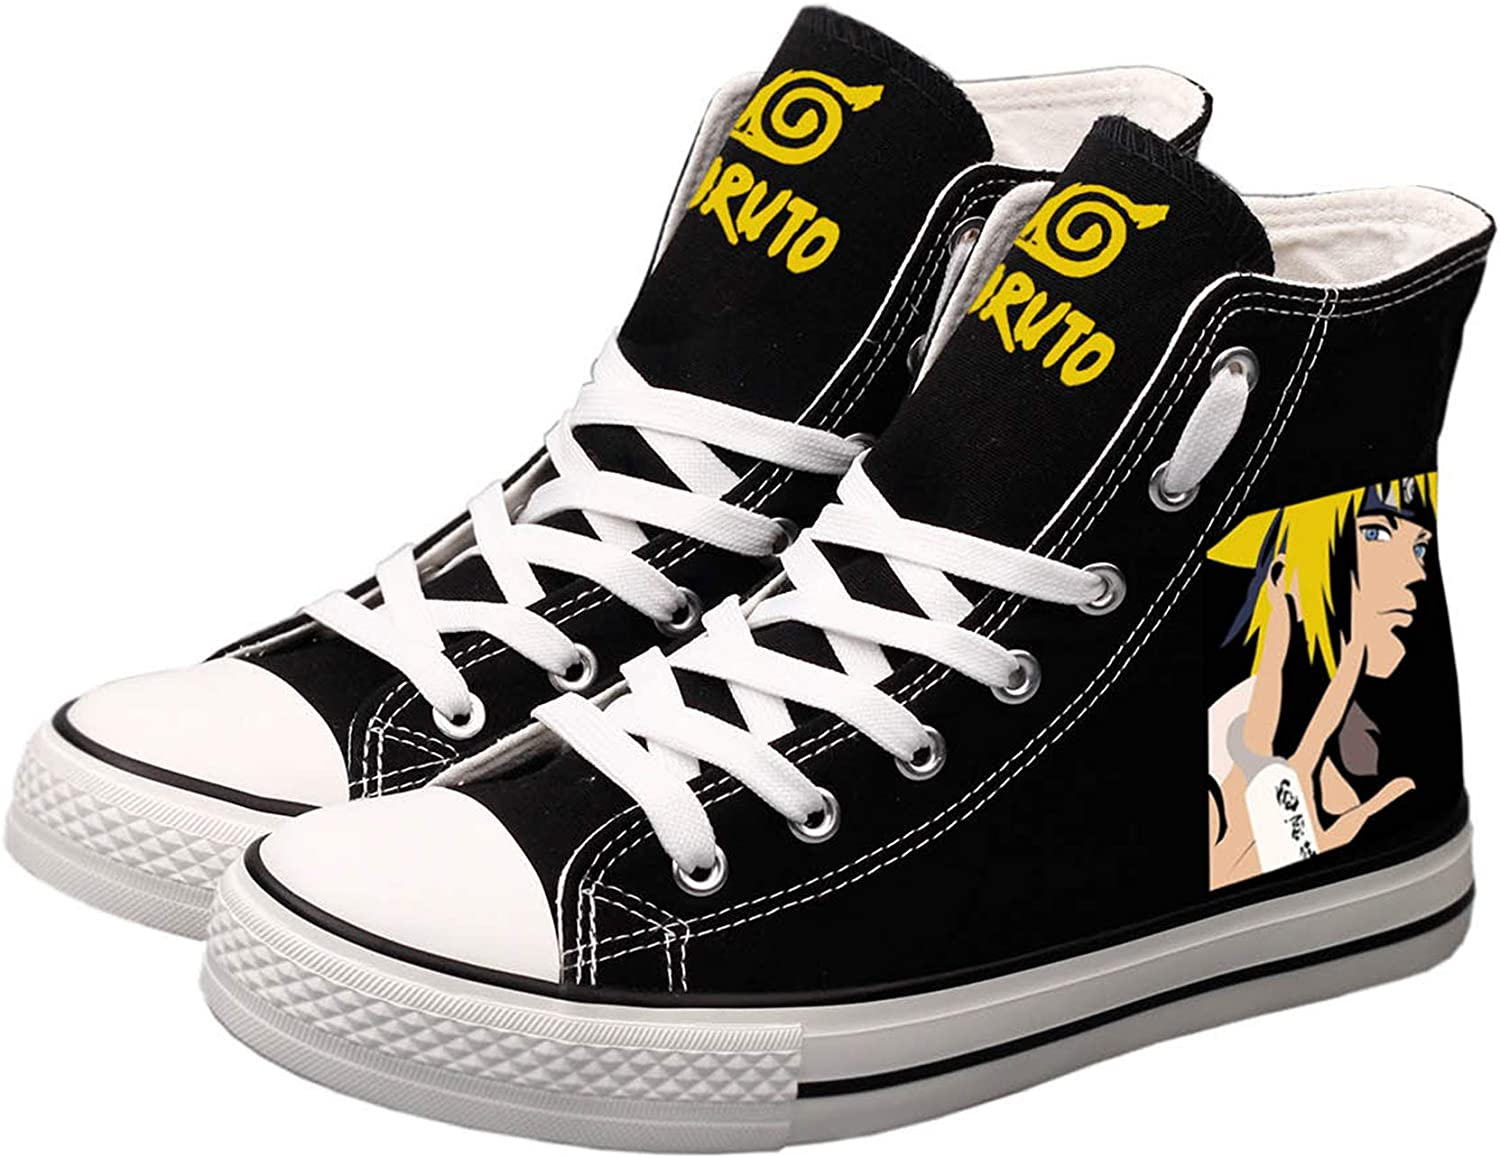 BEGOOTION Naruto Canvas shoes Hand-Painted Canvas shoes Casual Cosplay High Top Sneakers Unisex Designs Black 10 M US (CN 44)